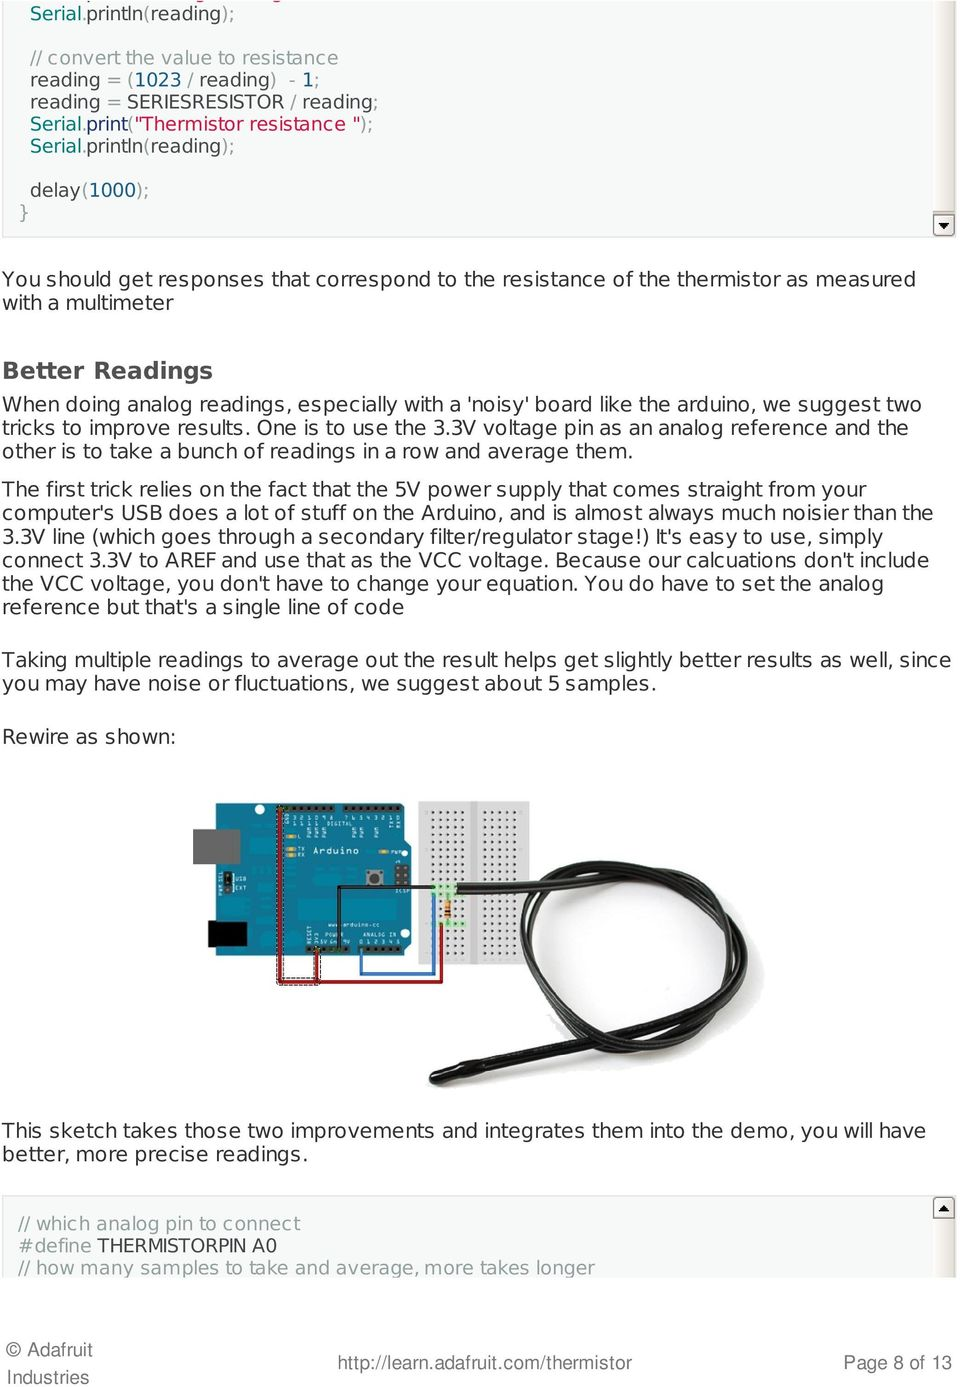 Thermistor Created By Ladyada Last Updated On 3046 Pm Edt Pdf Controlled Fan Circuit Using Electronics Circuits Printlnreading Delay1000 You Should Get Responses That Correspond